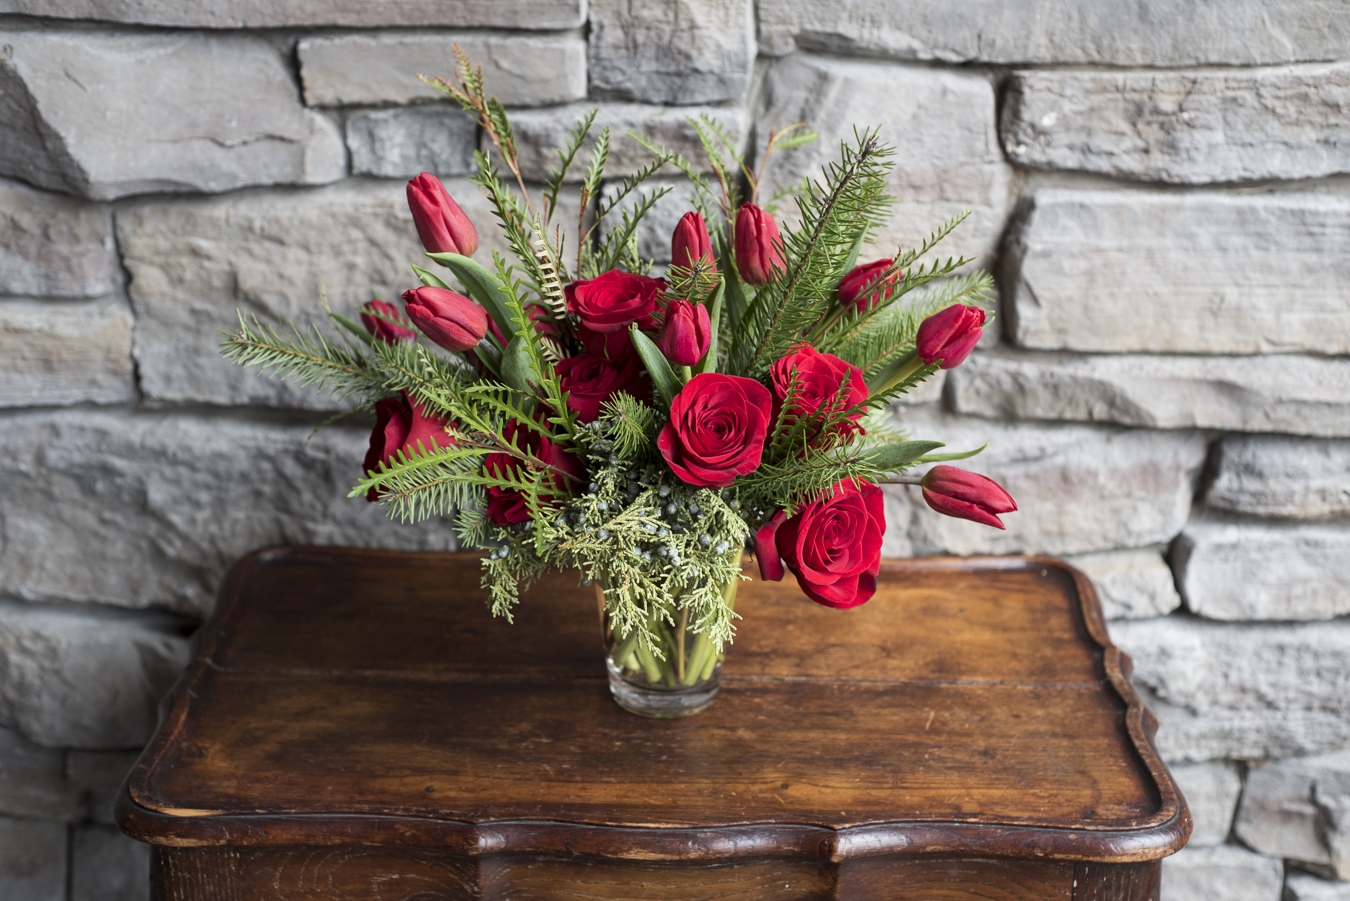 Flowers by Chloe - Floral design, bouquets and boutineers